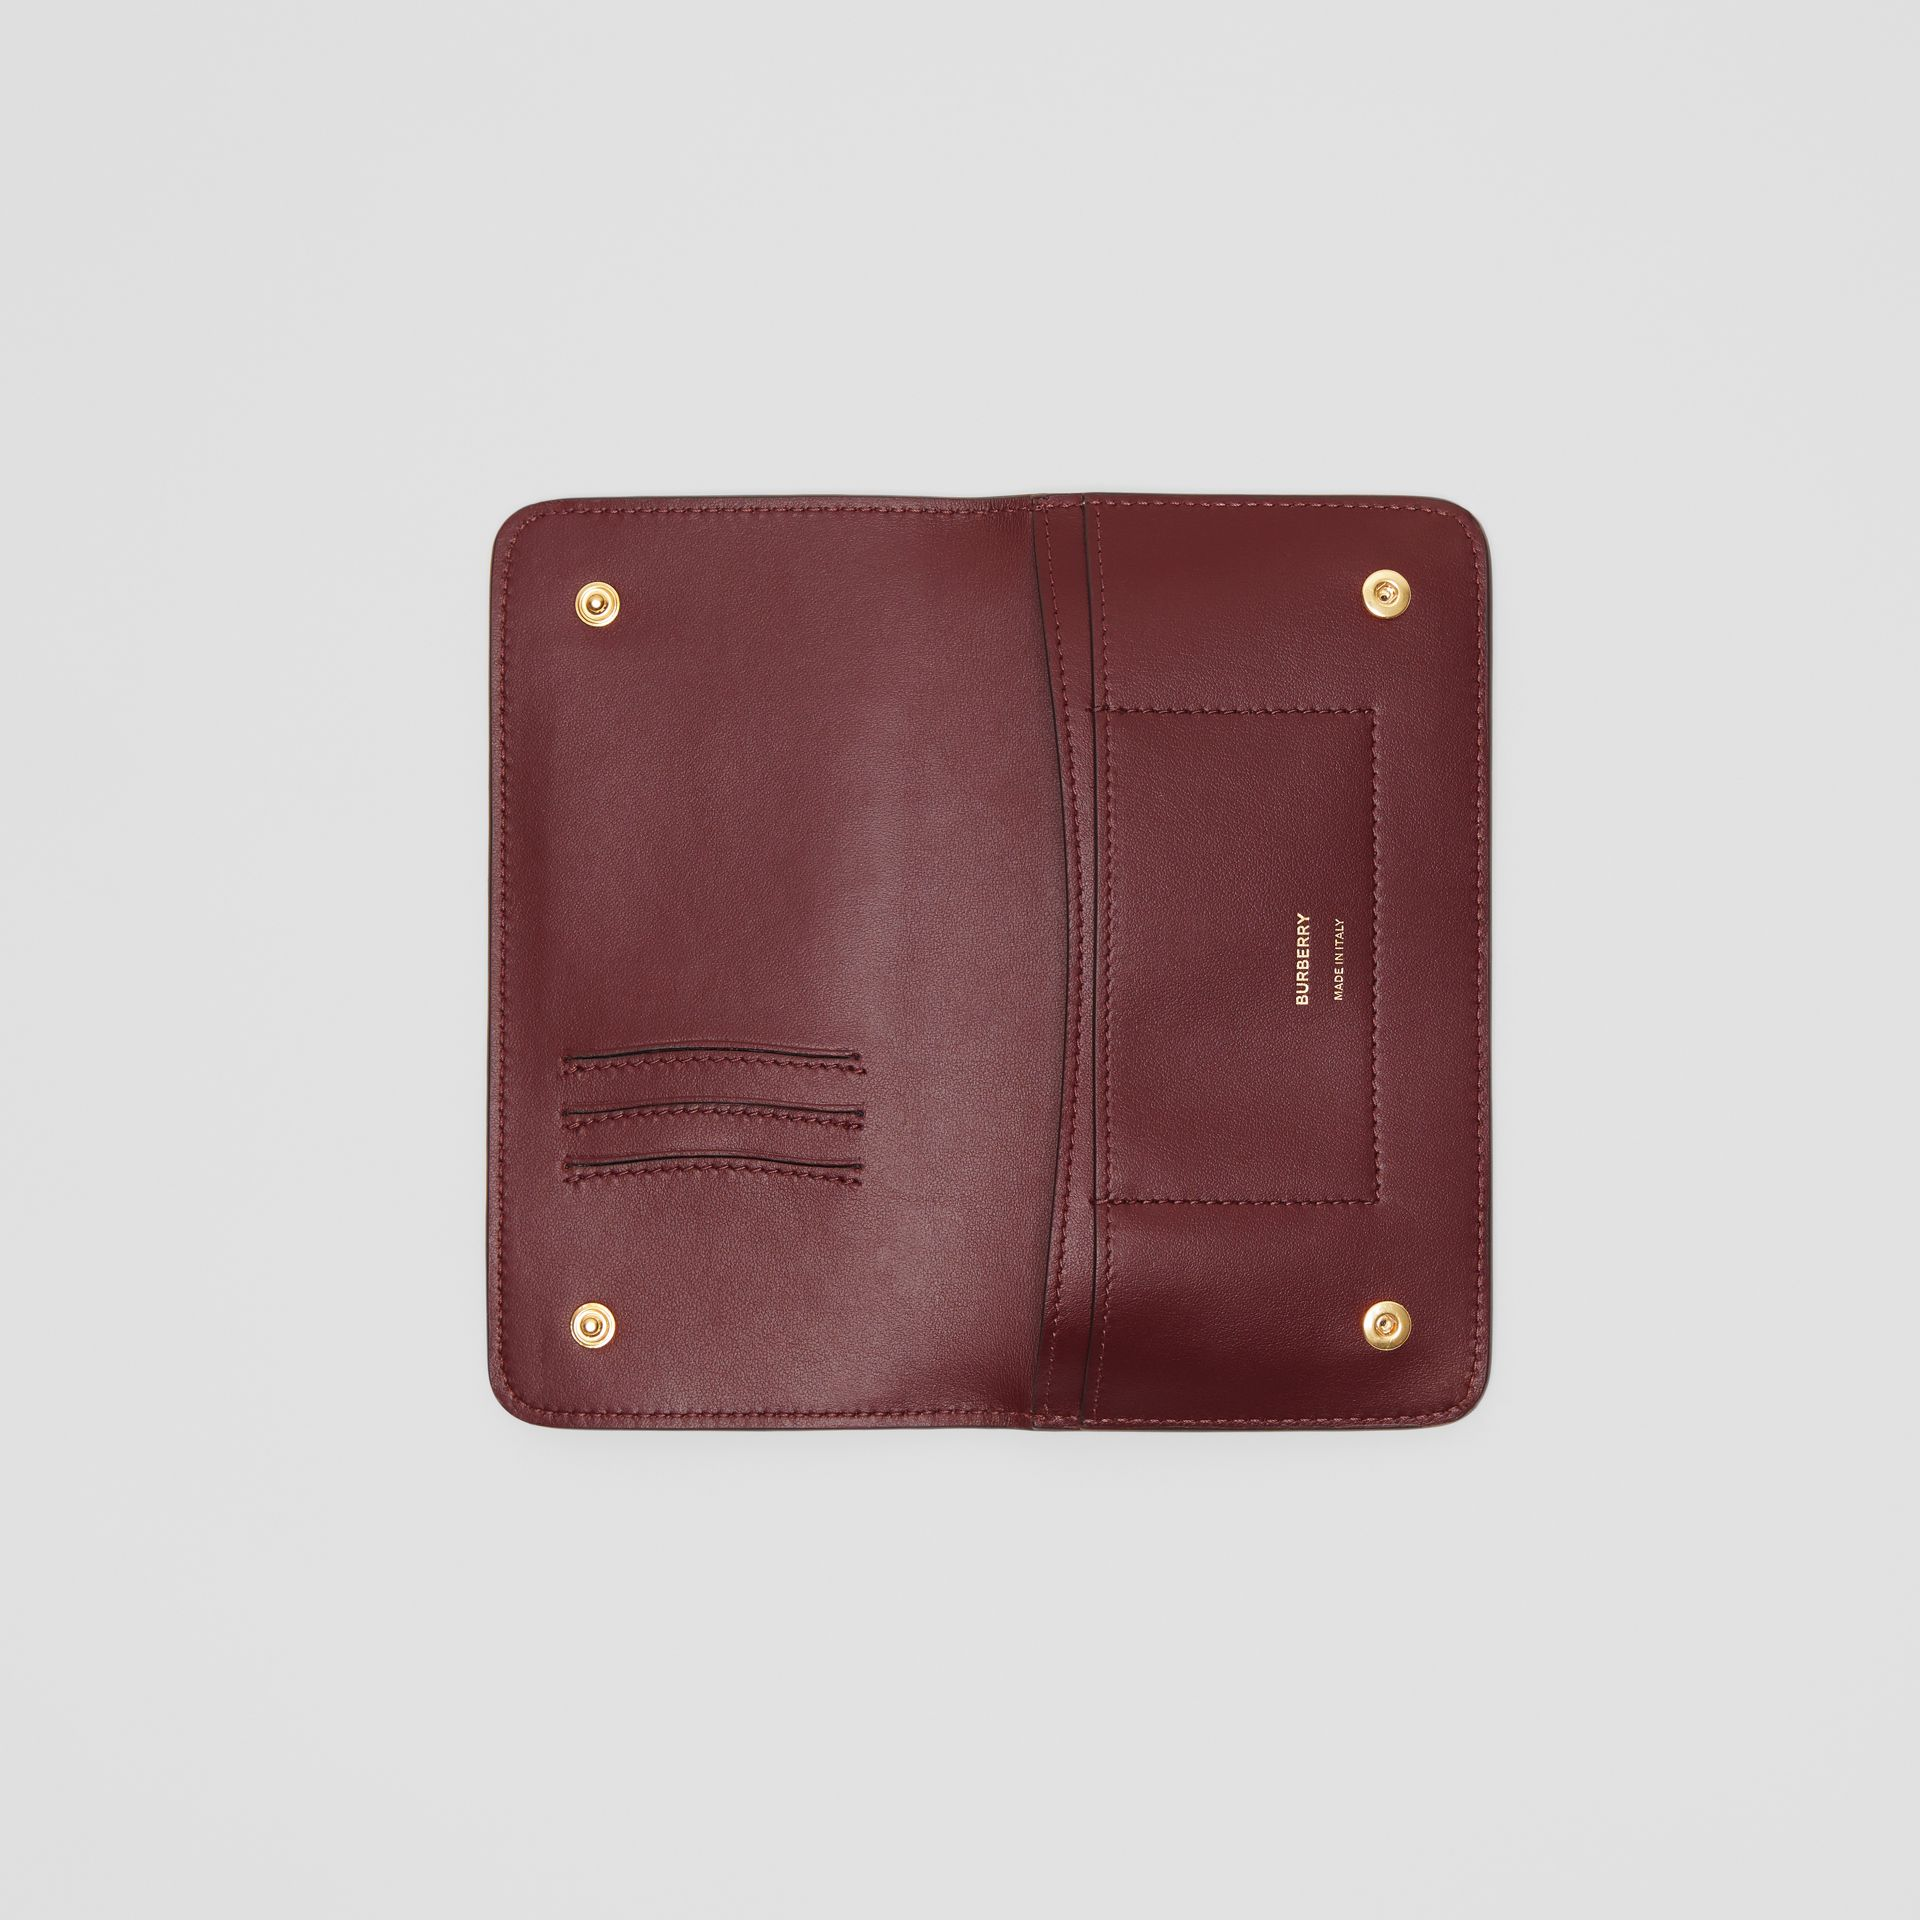 Monogram Leather Phone Wallet in Oxblood - Women | Burberry United Kingdom - gallery image 2